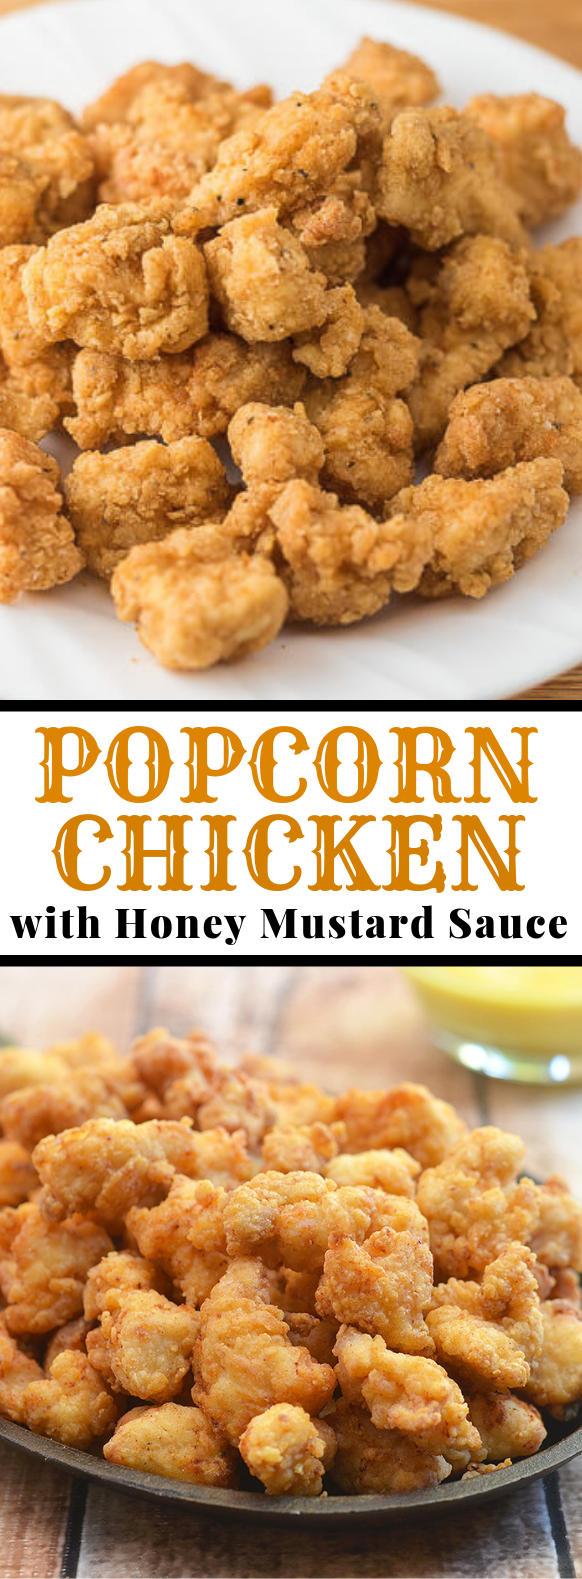 Crispy Popcorn Chicken #dinner #easydinner